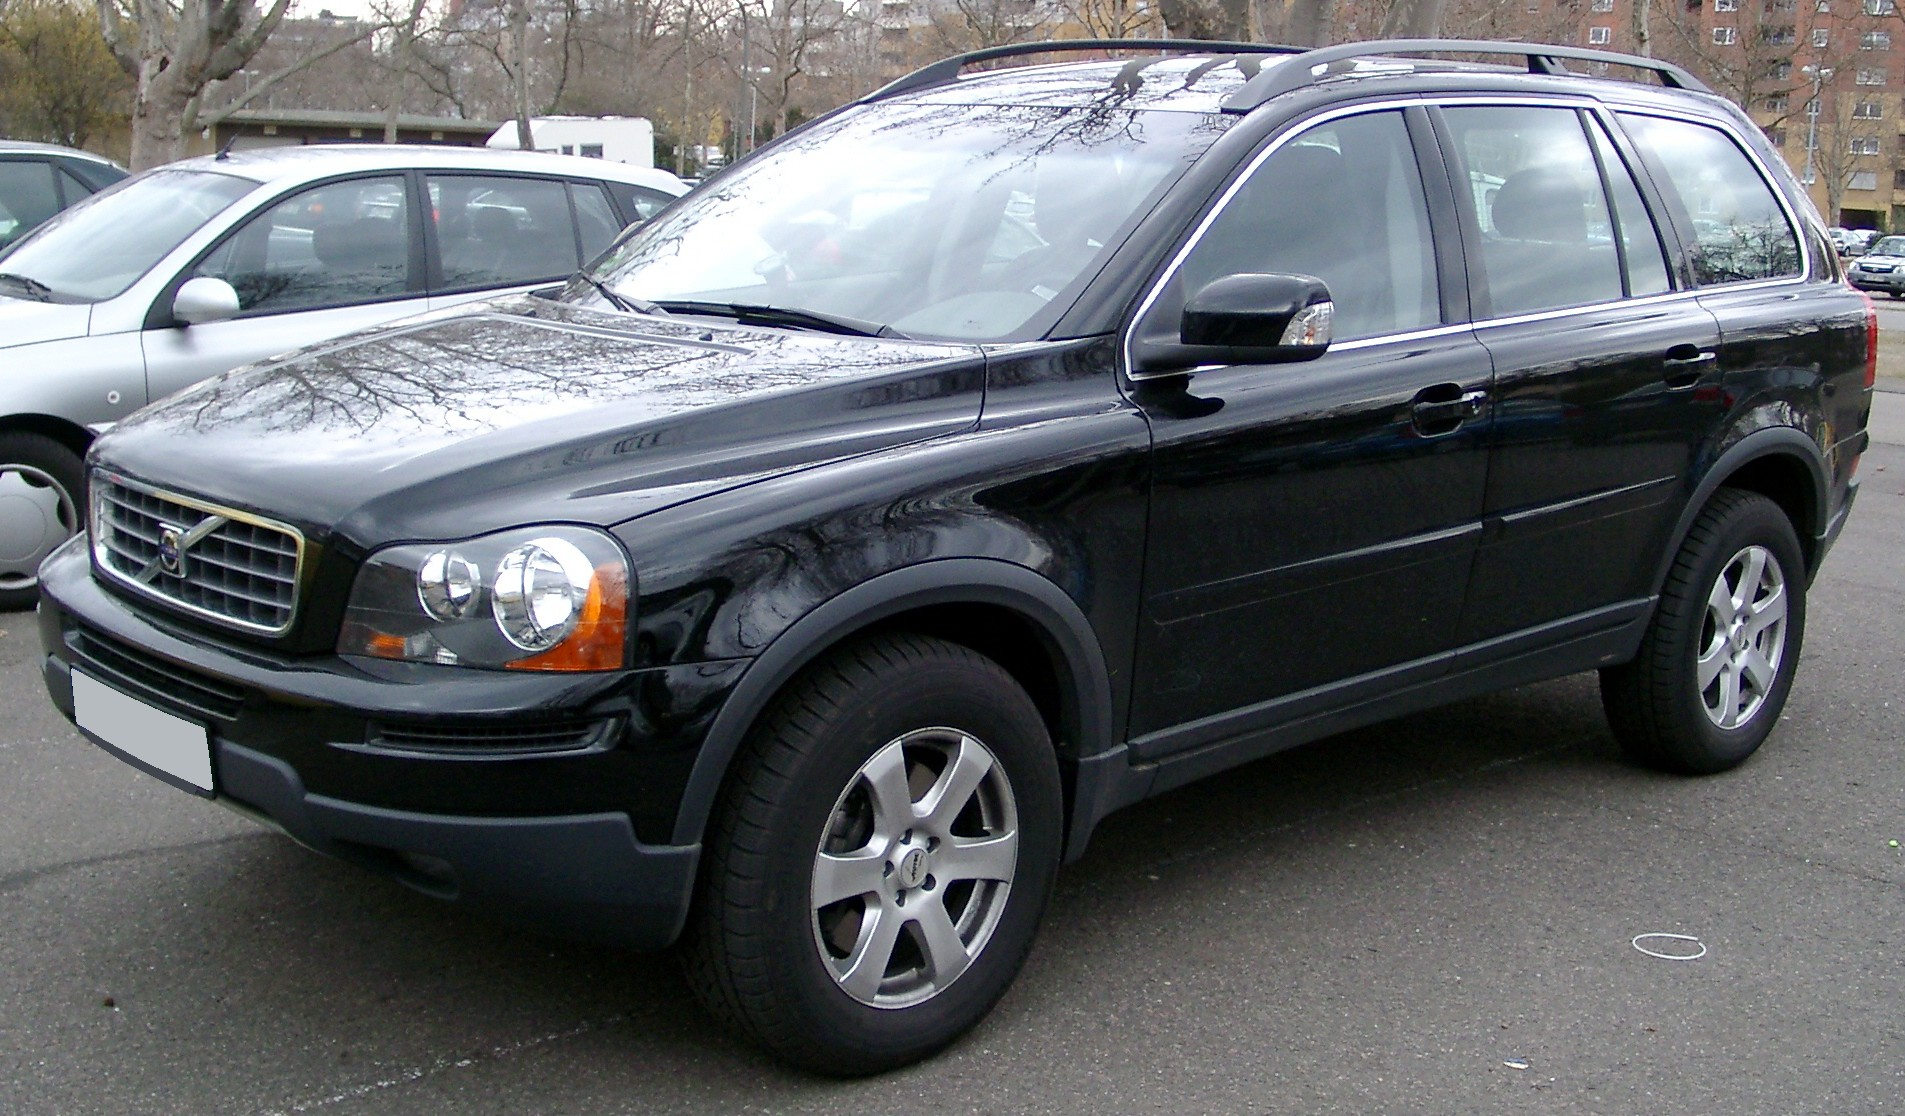 Volvo_XC90_front_20080226 Great Description About Volvo C30 R Design with Interesting Gallery Cars Review